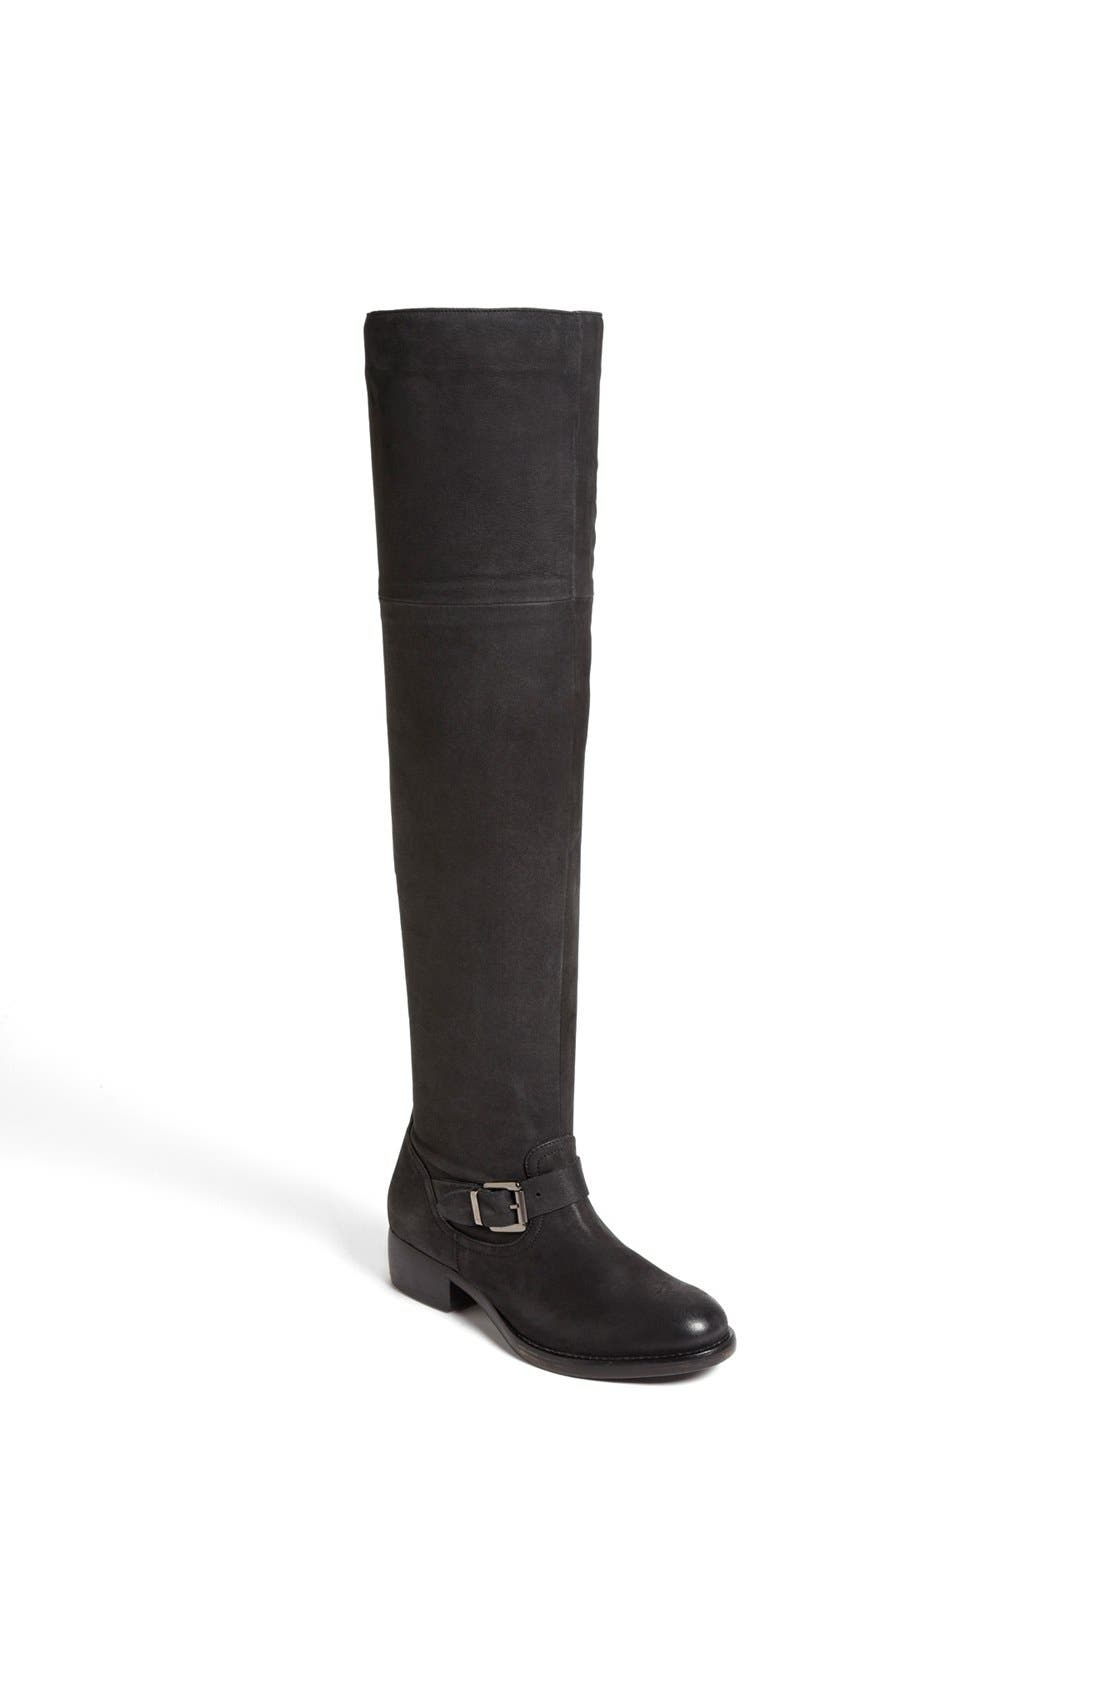 Alternate Image 1 Selected - Kurt Geiger London 'Ash' Over the Knee Boot